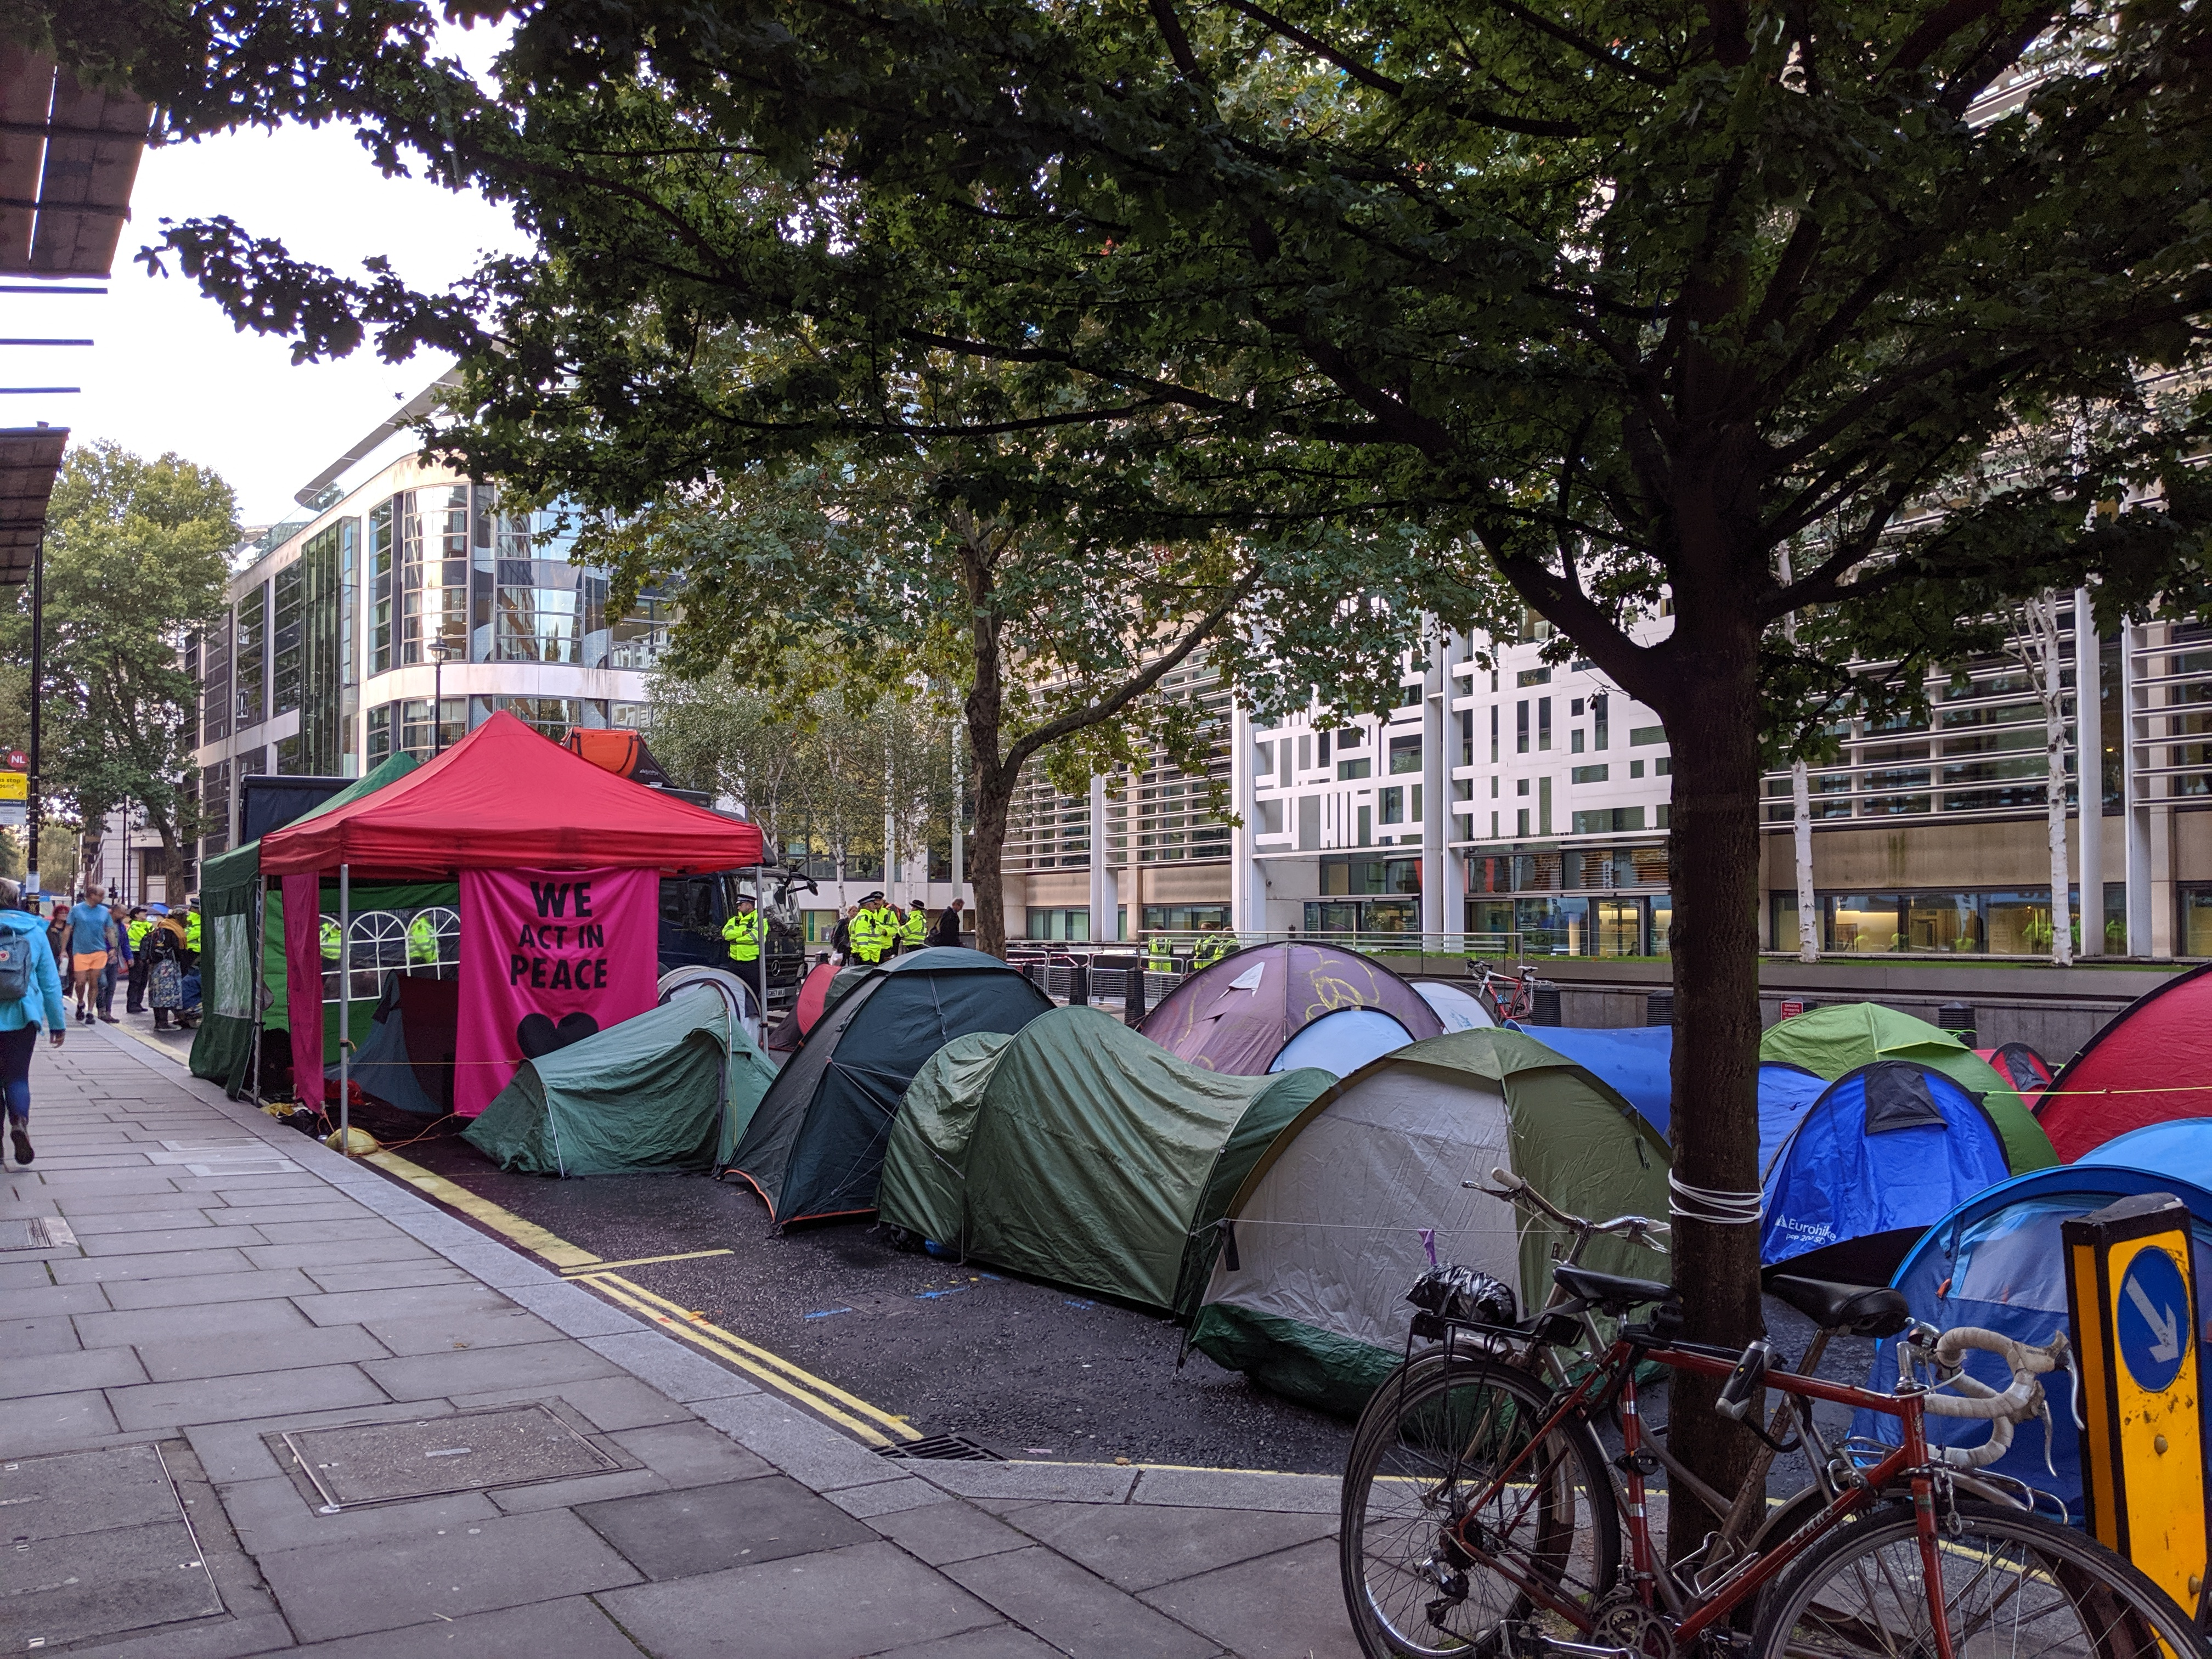 Tents in Marsham Street, outside the Home Office building. Tuesday morning around 0730 (8th October 2019